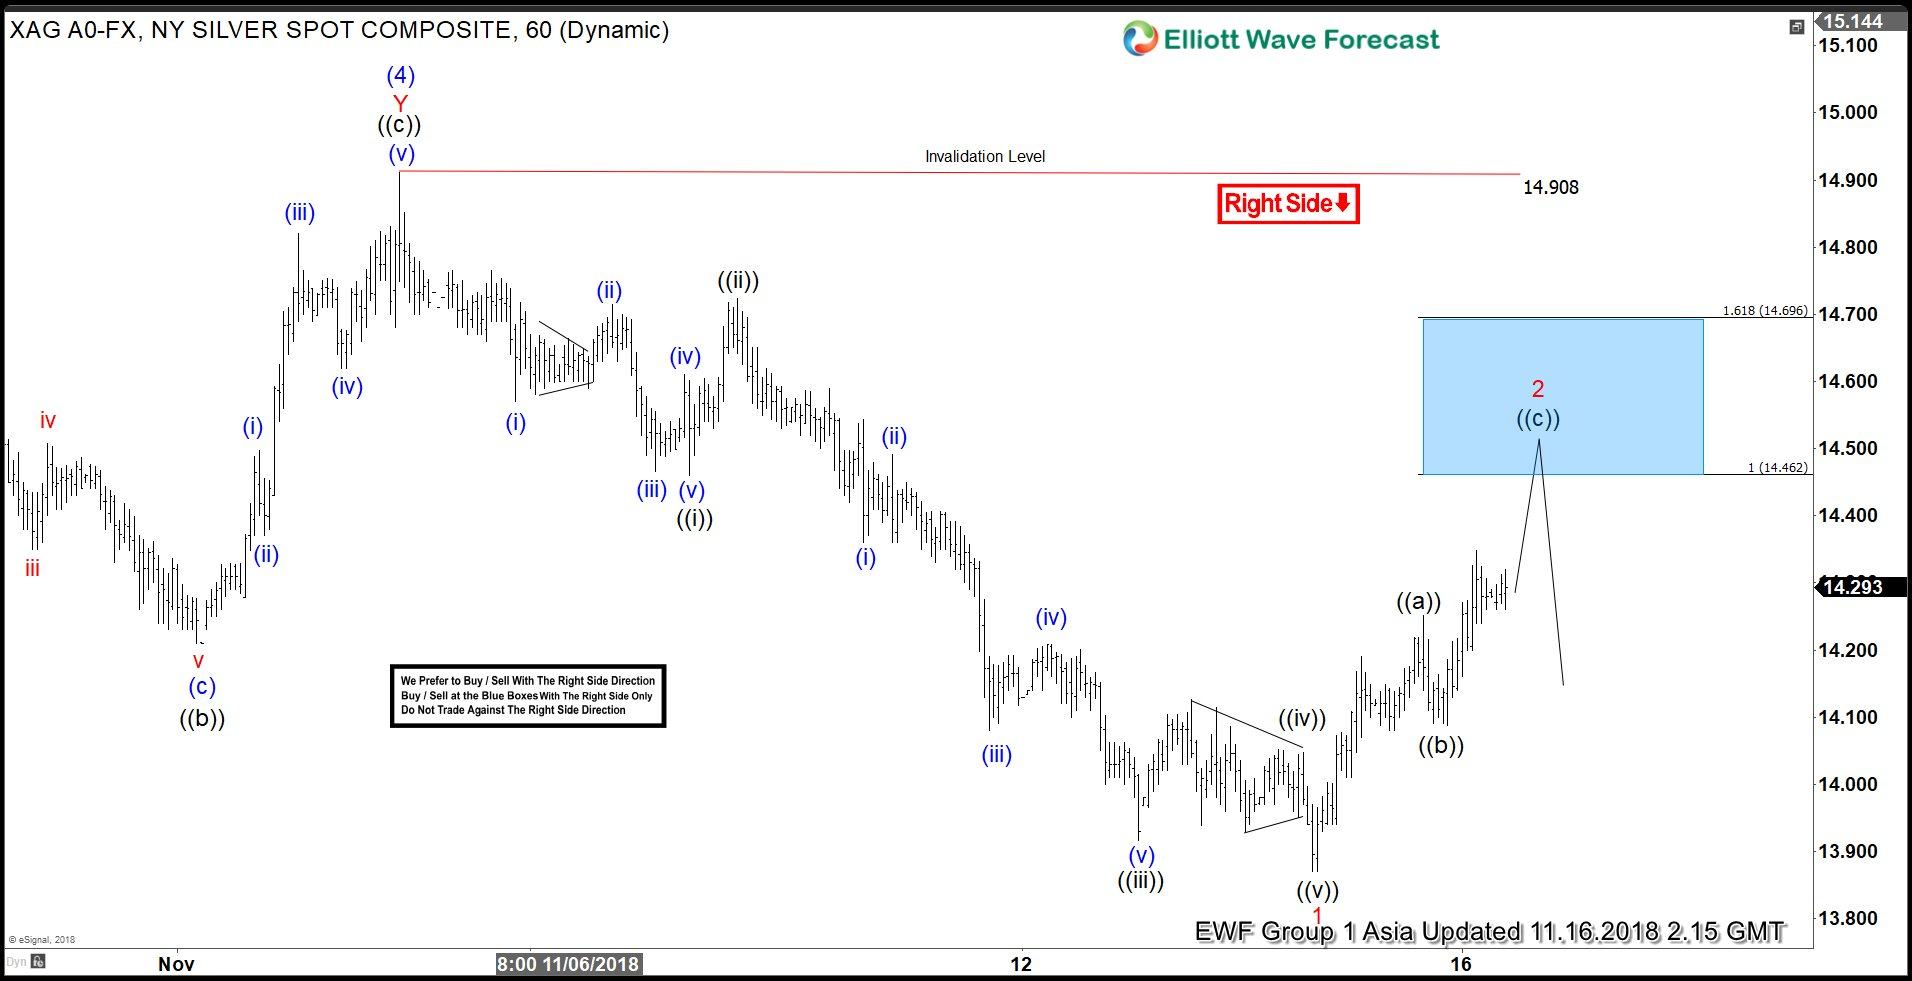 Elliott Wave Analysis: Another Dead Cat Bounce in Silver?